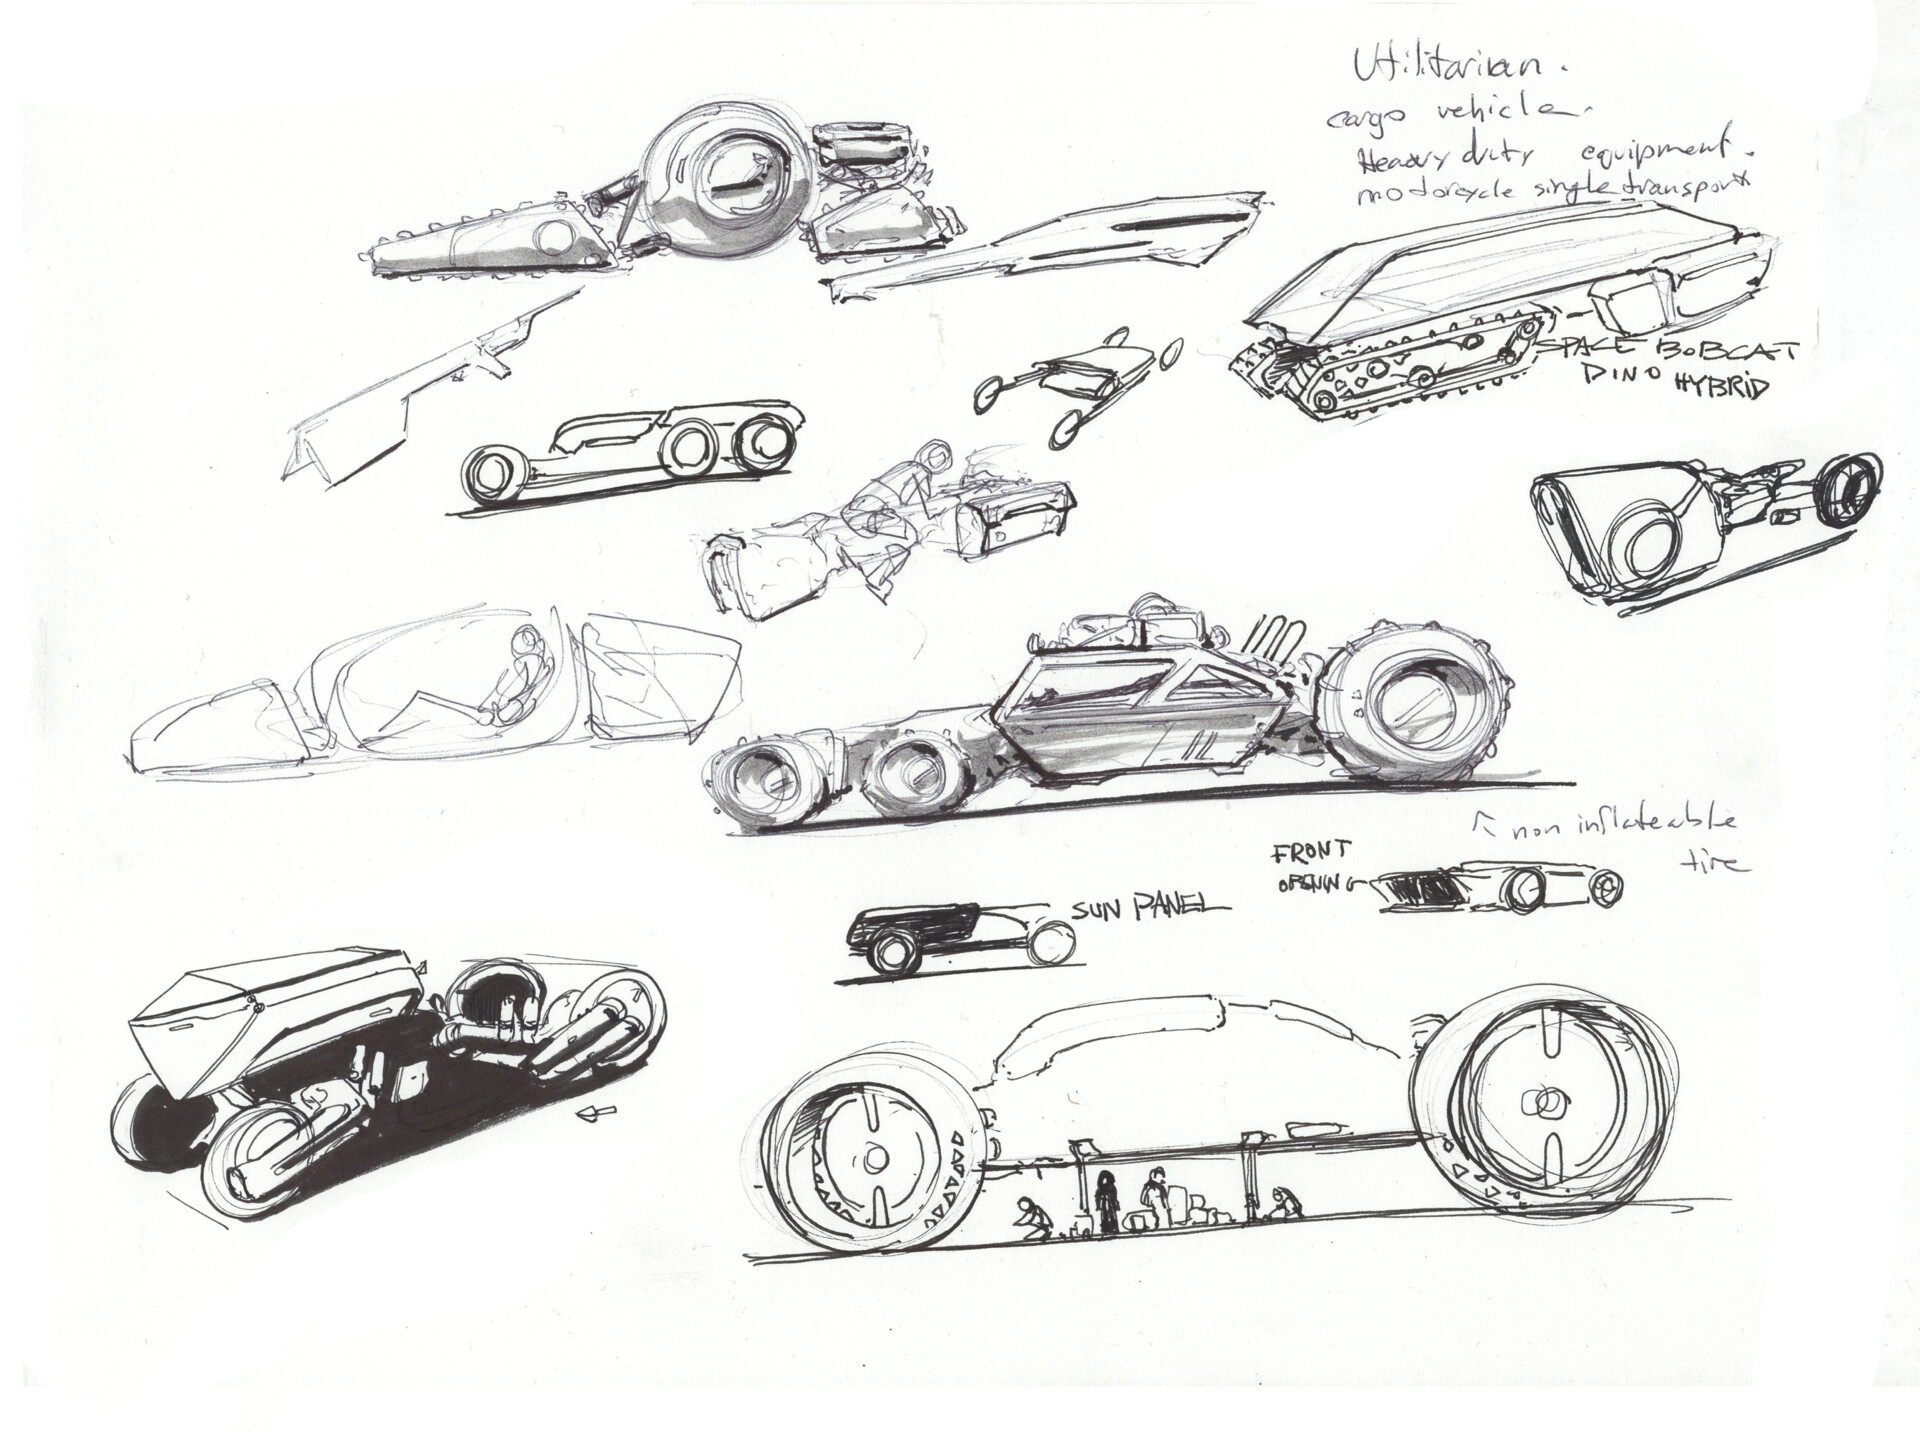 Space Rover Design. Thinking about the cabin and building around it. Want something that imbues speed and ruggedness.